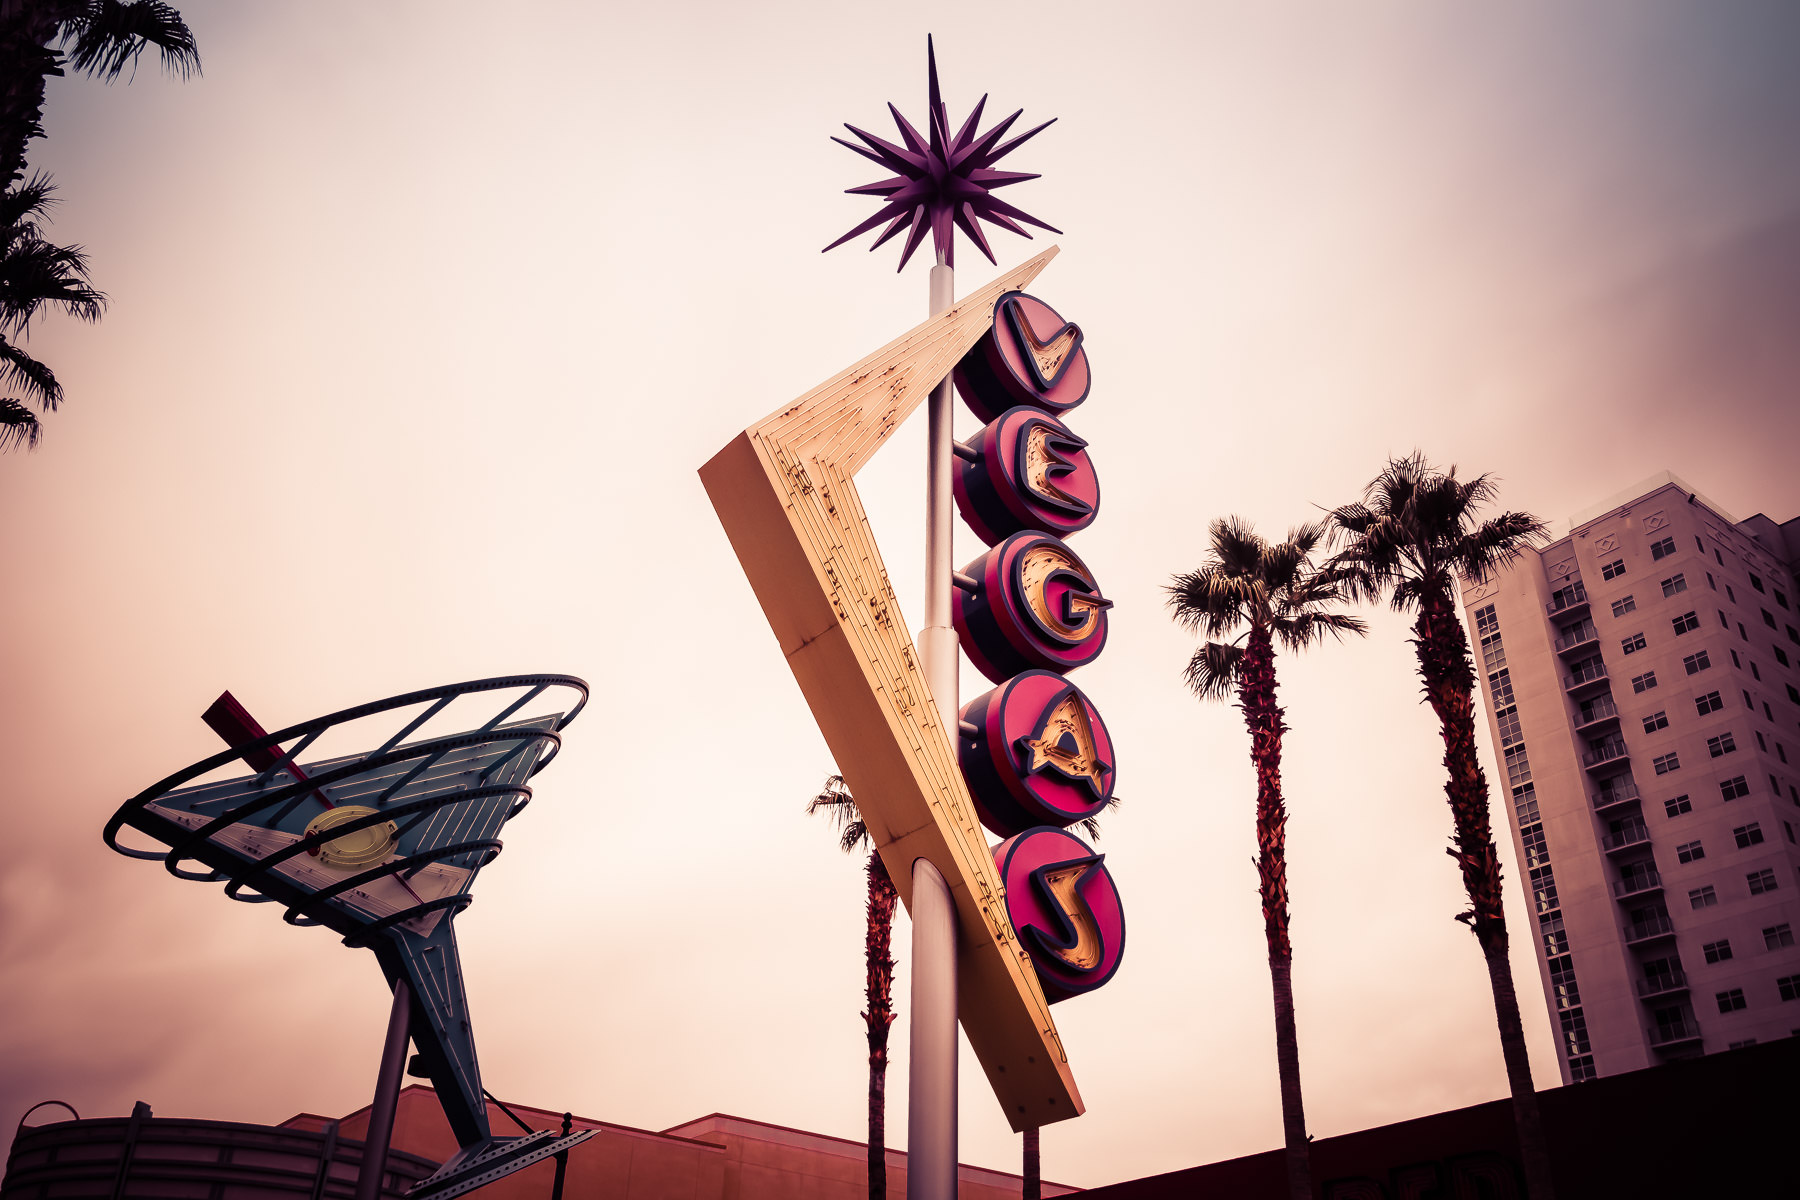 A Googie-styled sign rises into the Downtown Las Vegas sky.